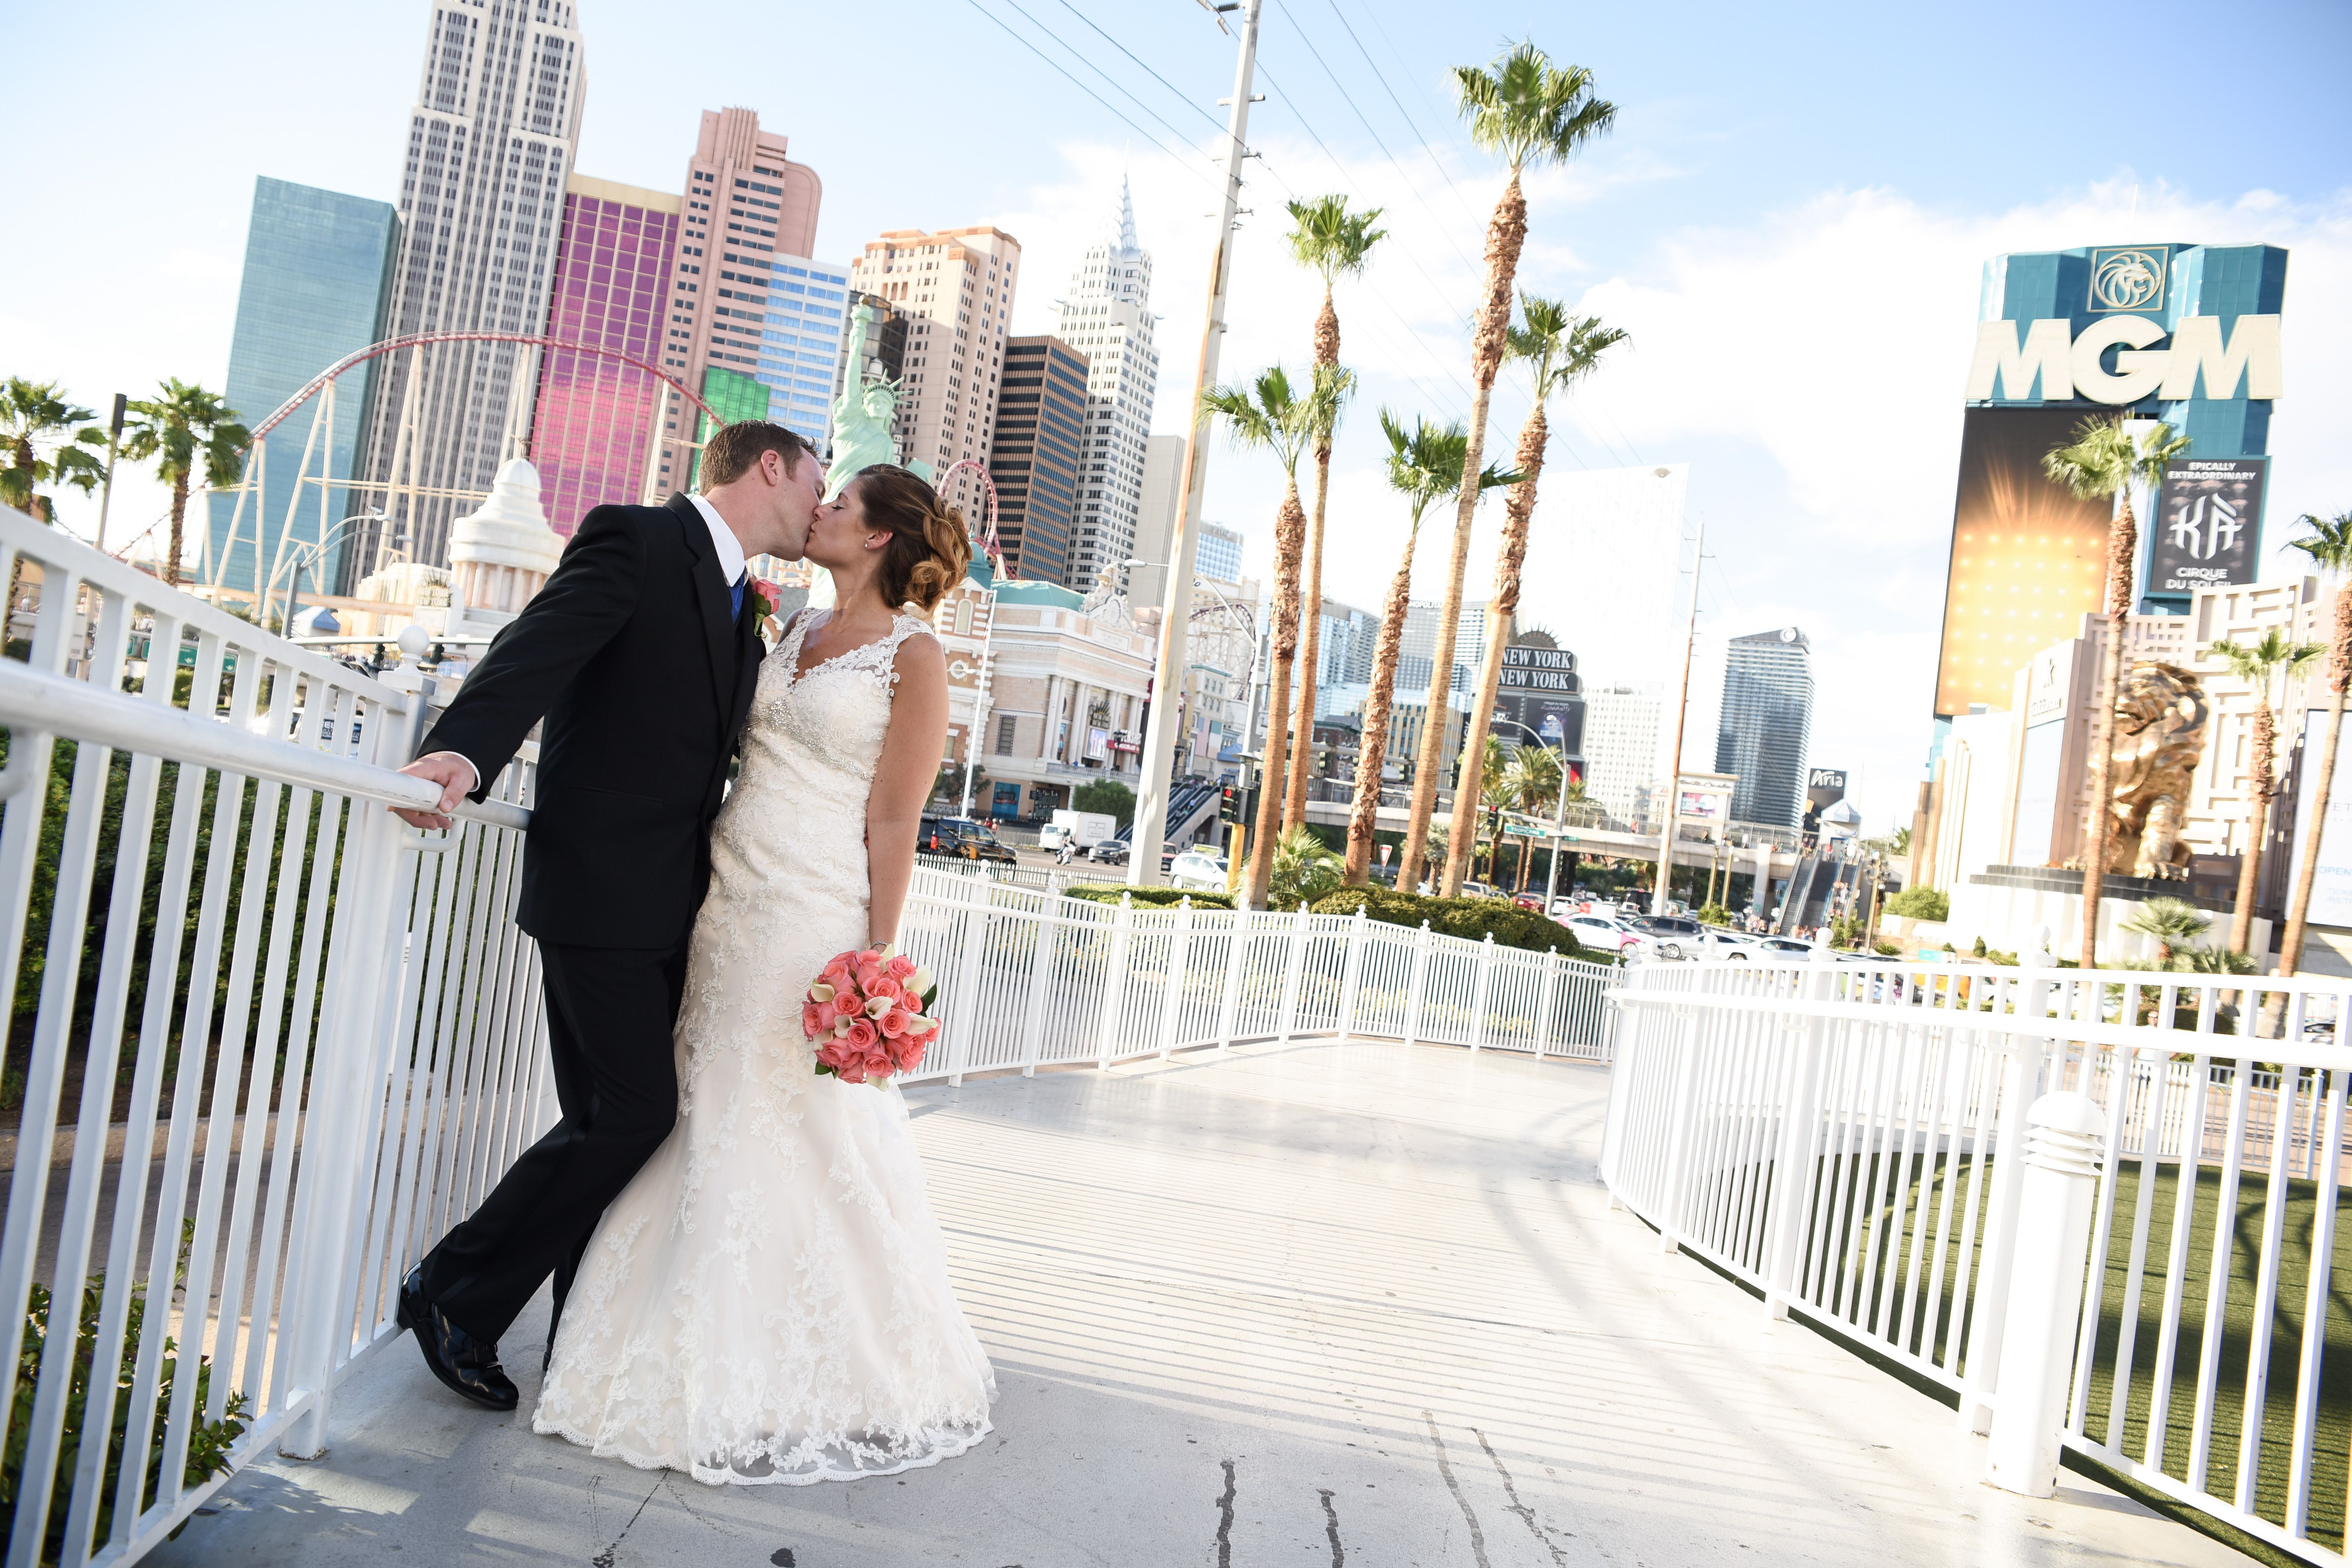 Las Vegas Wedding Planners Included In Every Package At Tropicana Affordable All Inclusive Packages And Planning Tips